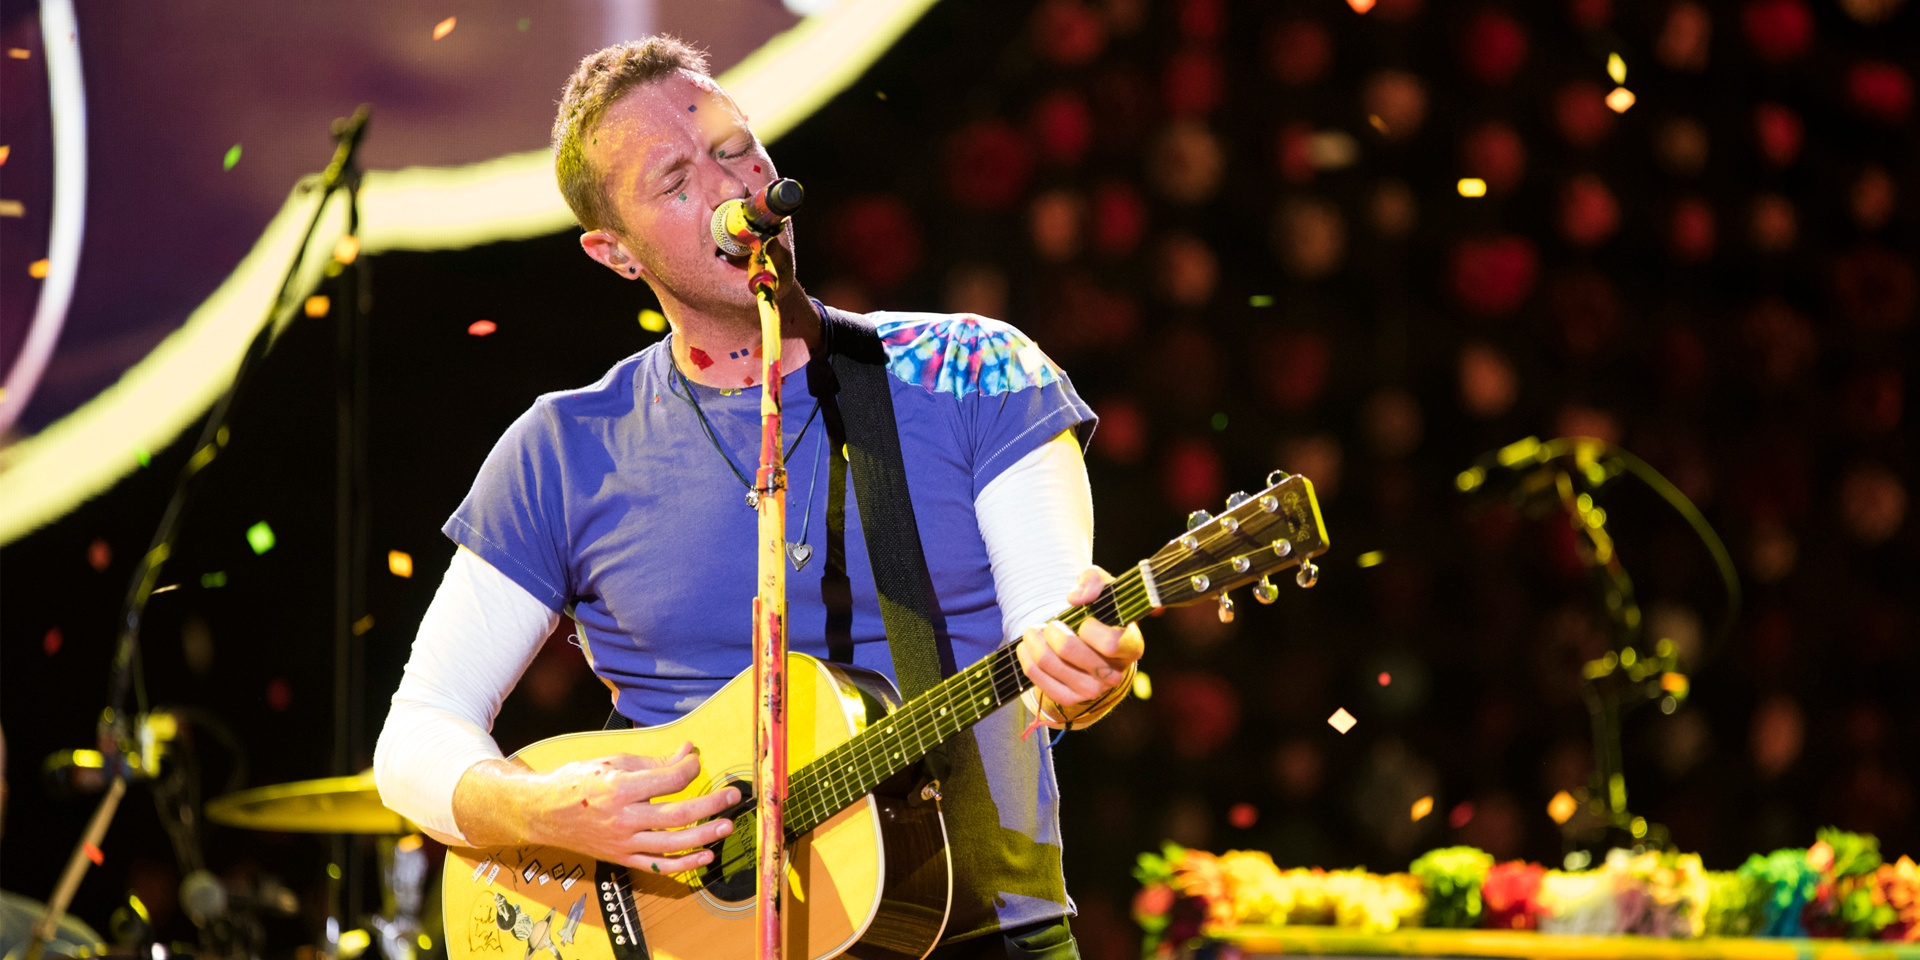 WATCH: Coldplay performs a song written about Singapore